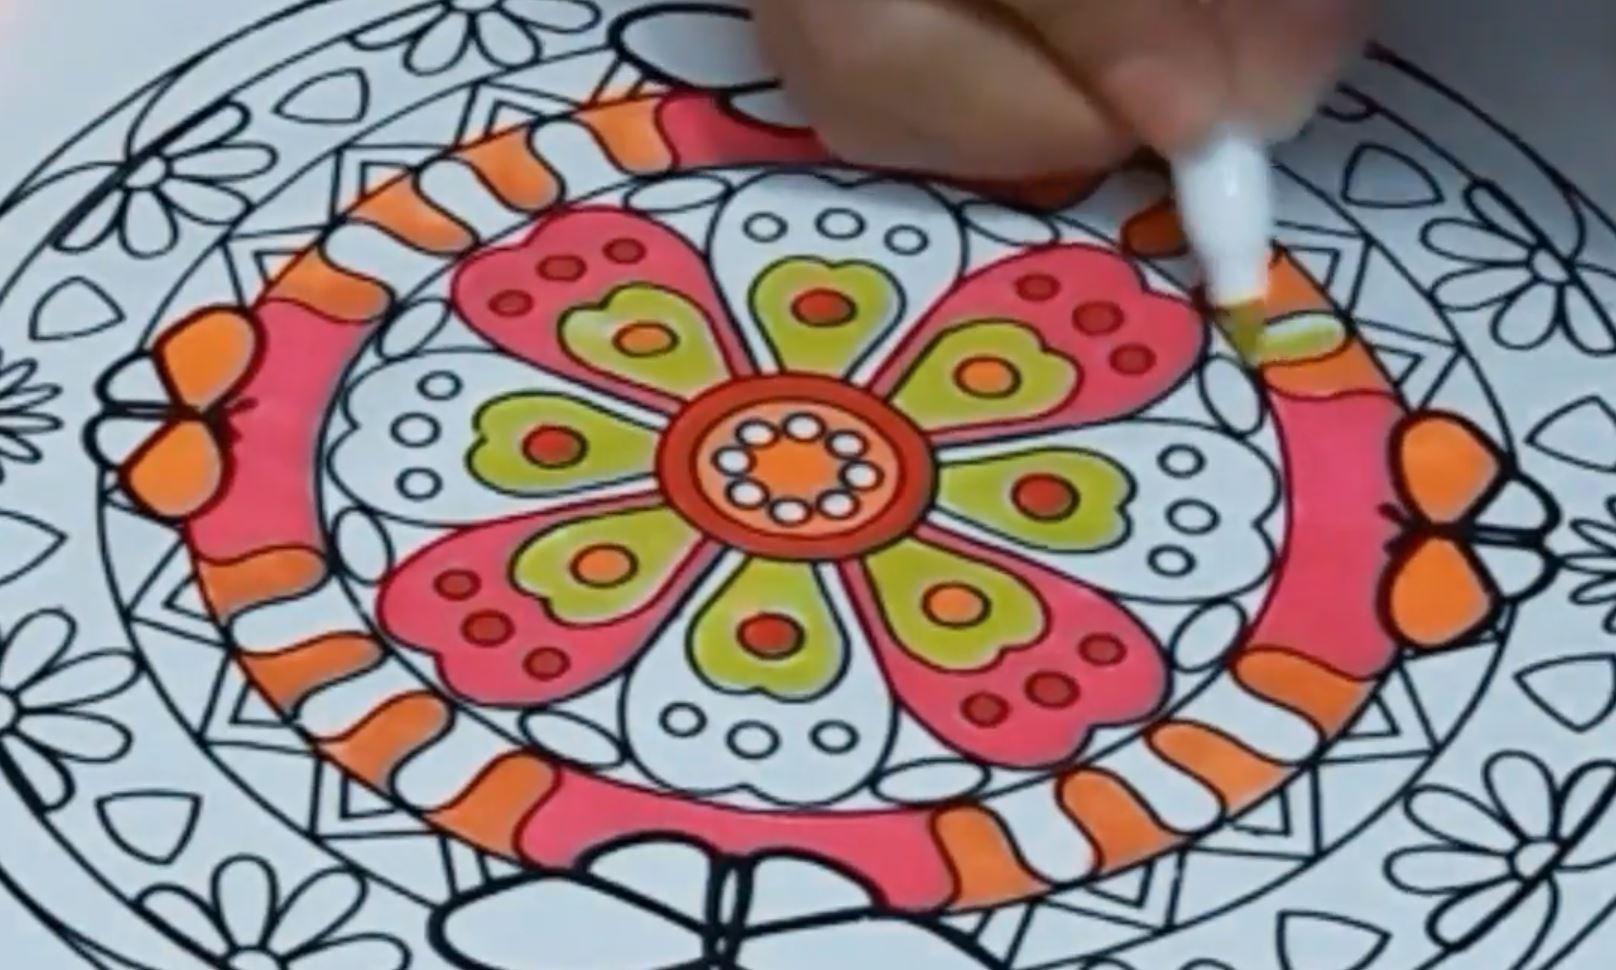 mandala-proceso-color-1